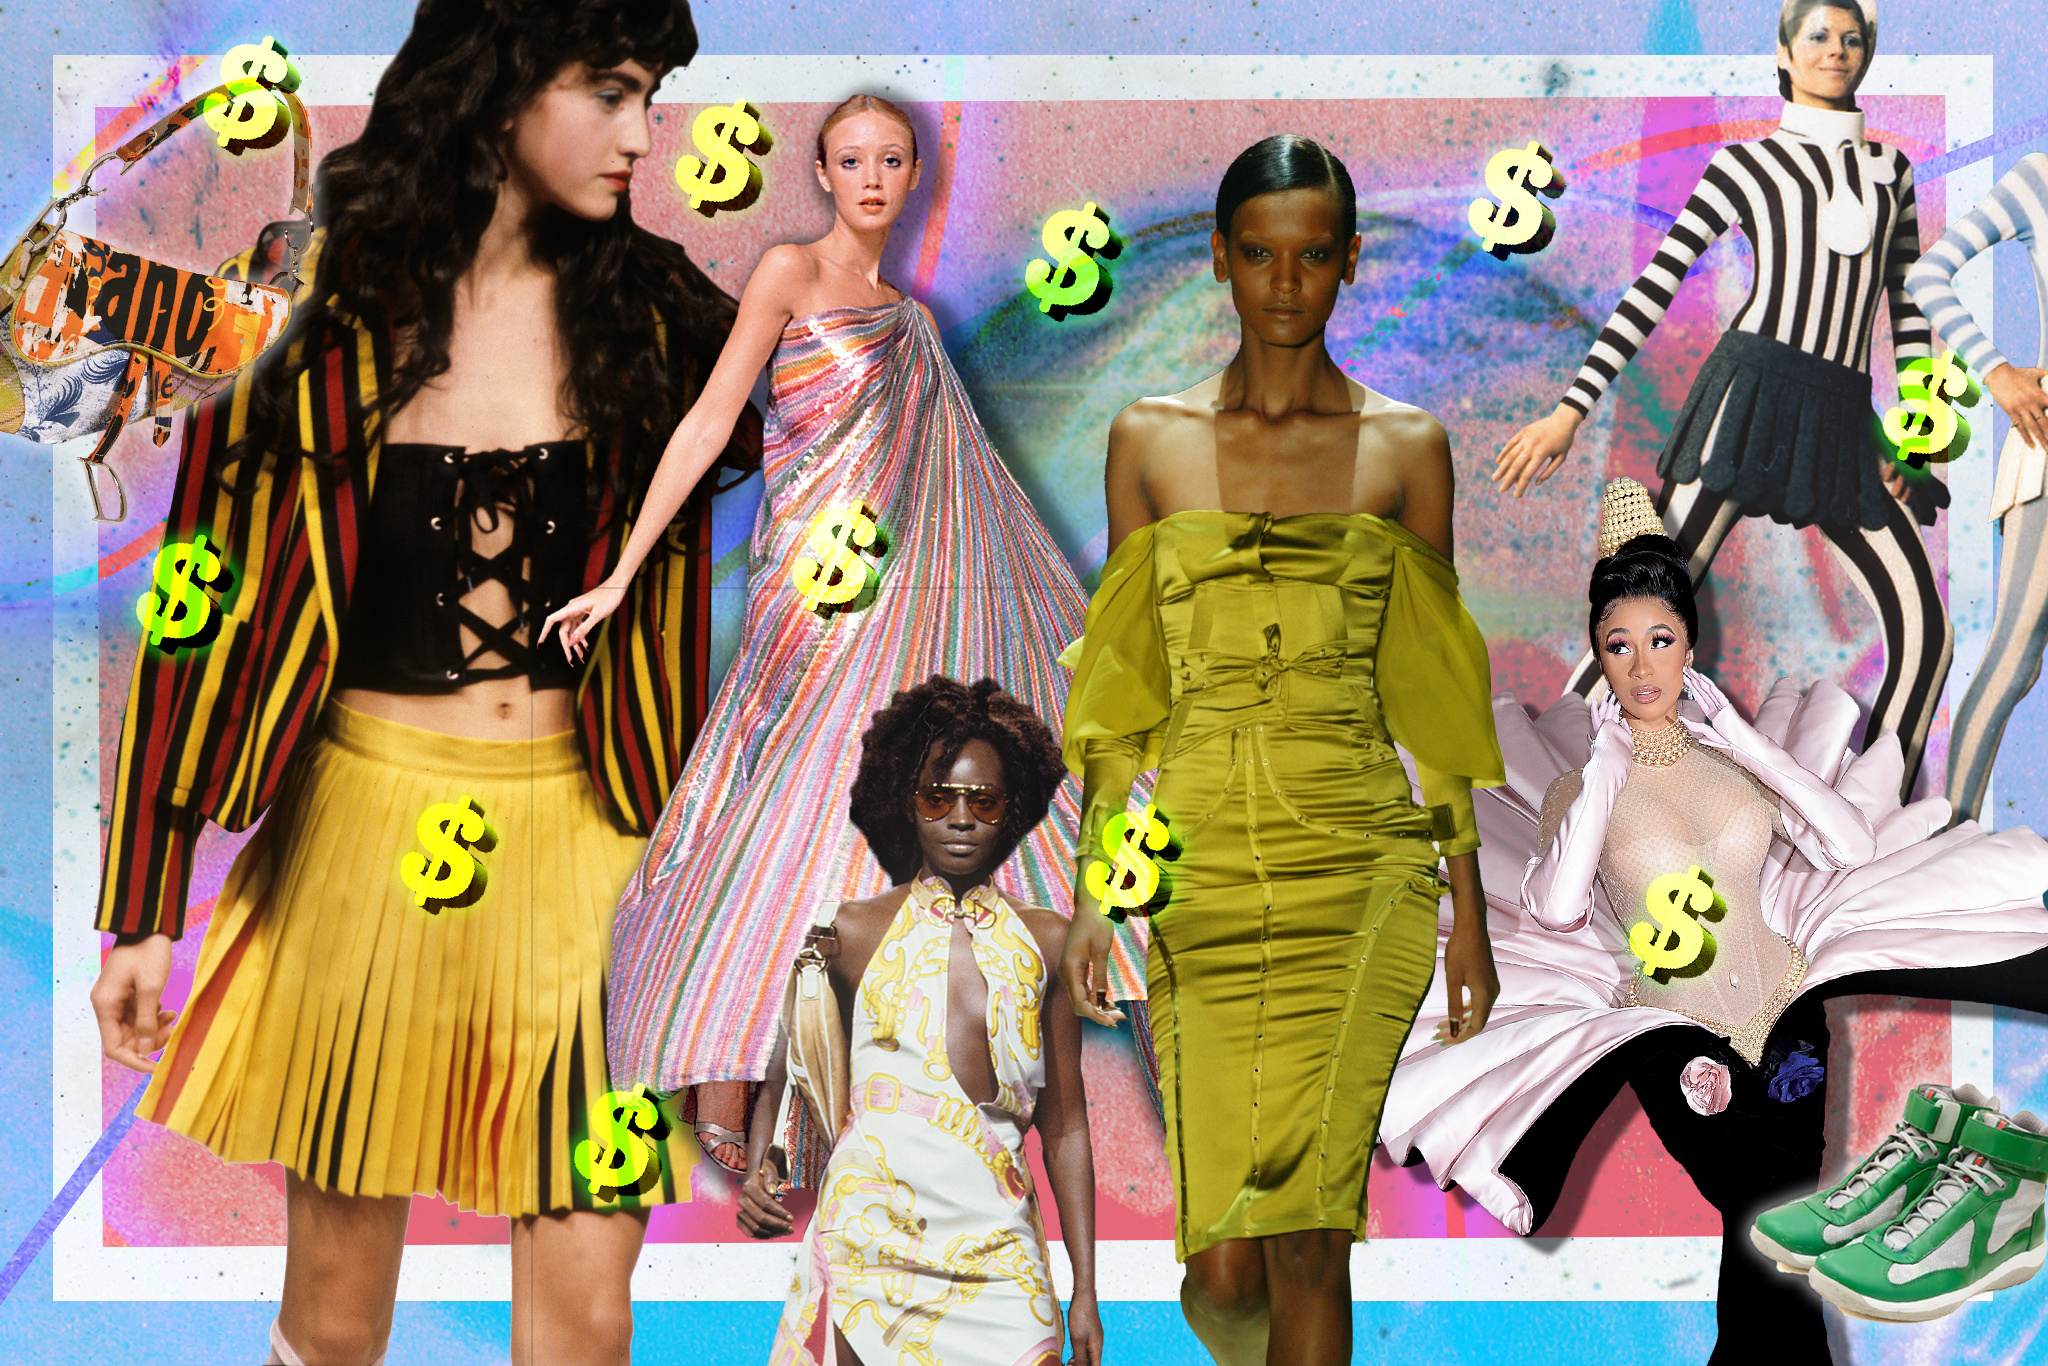 Vintage styles that are popular in today's market, including looks by Vivienne Westwood, Halston, Dior by John Galliano, Gucci by Tom Ford, Thierry Mugler and Prada Sport.